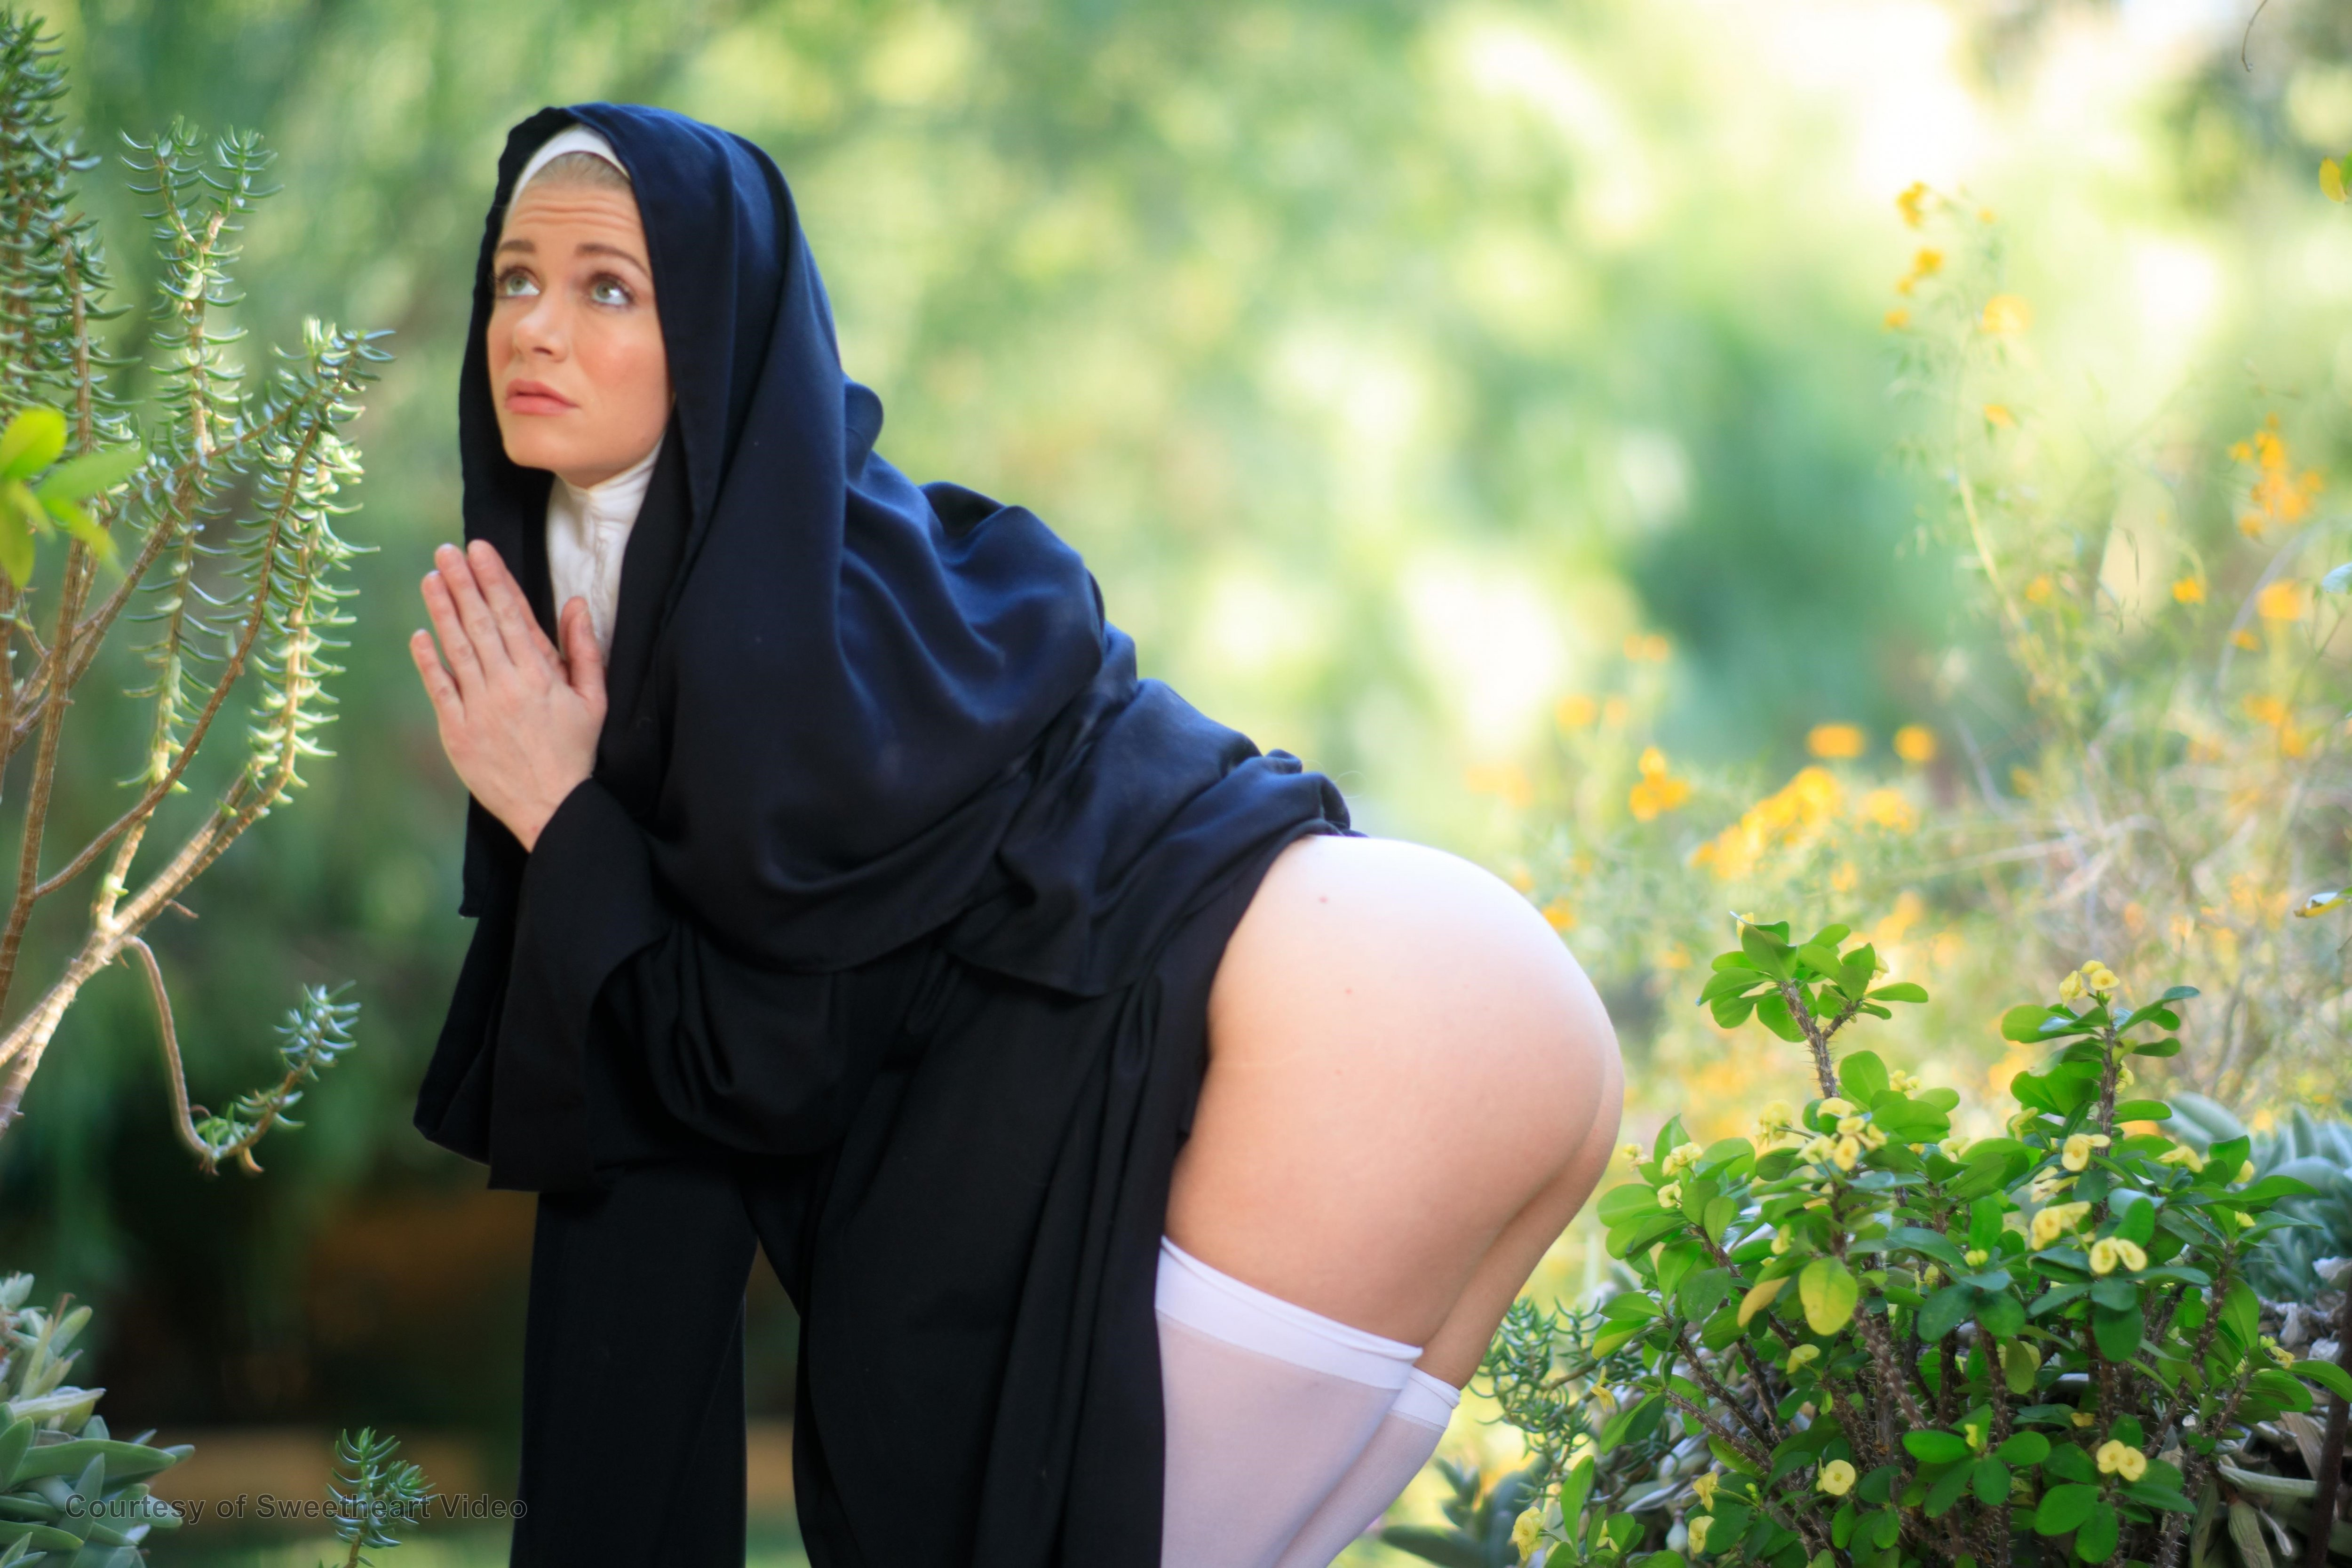 Confessions of a Sinful Nun Volume 2 Image